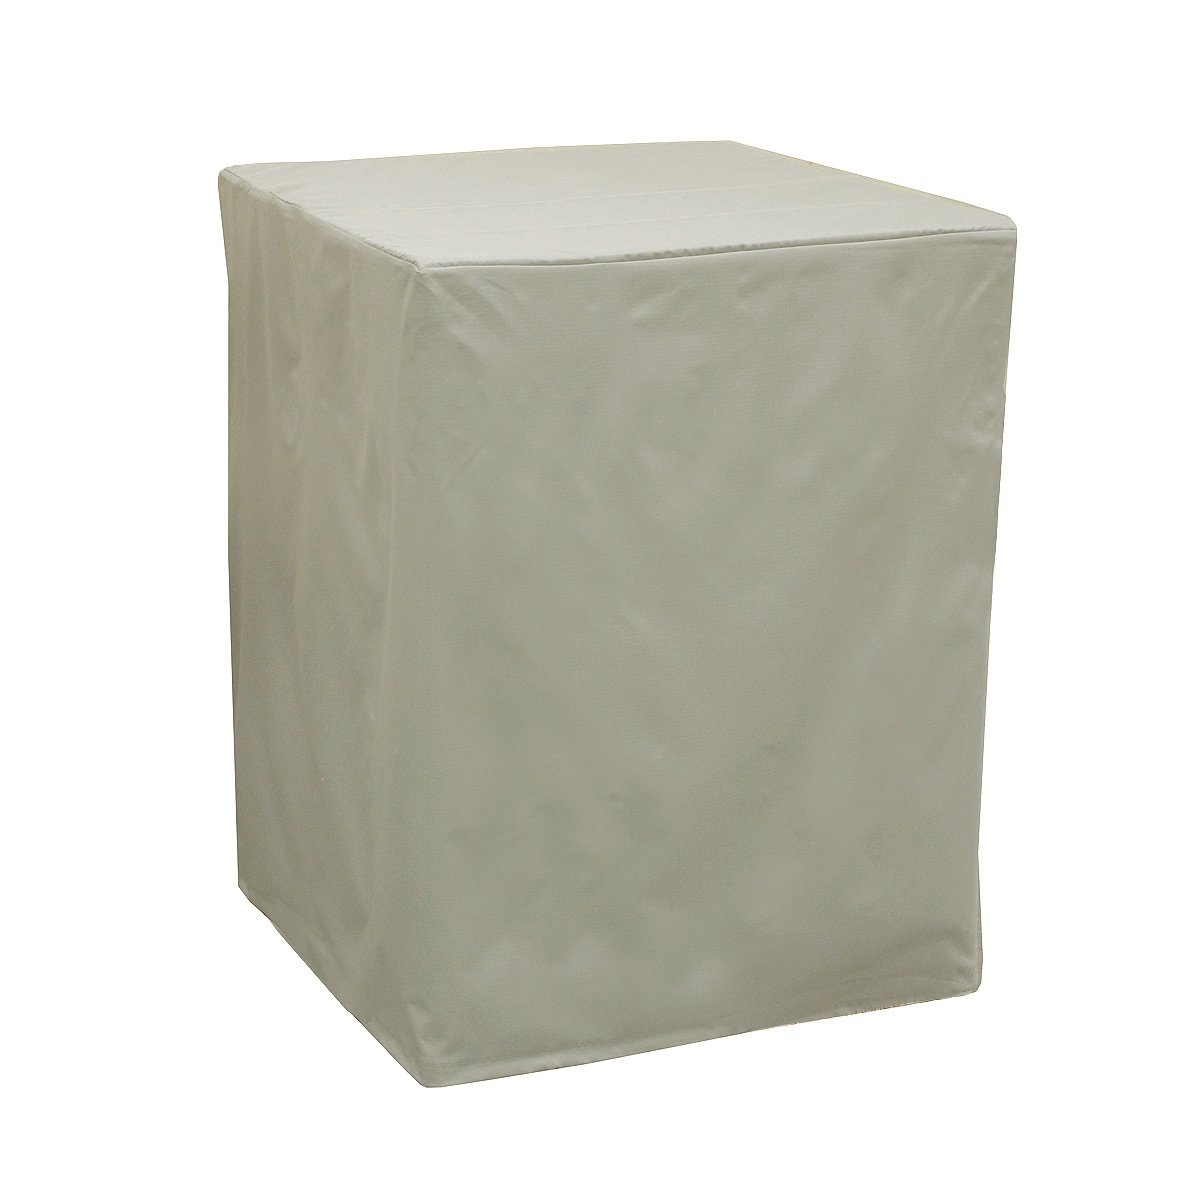 Dial Manufacturing Evaporative Cooler Cover - Down Draft - 62''w 62''d 62''h by Dial Manufacturing